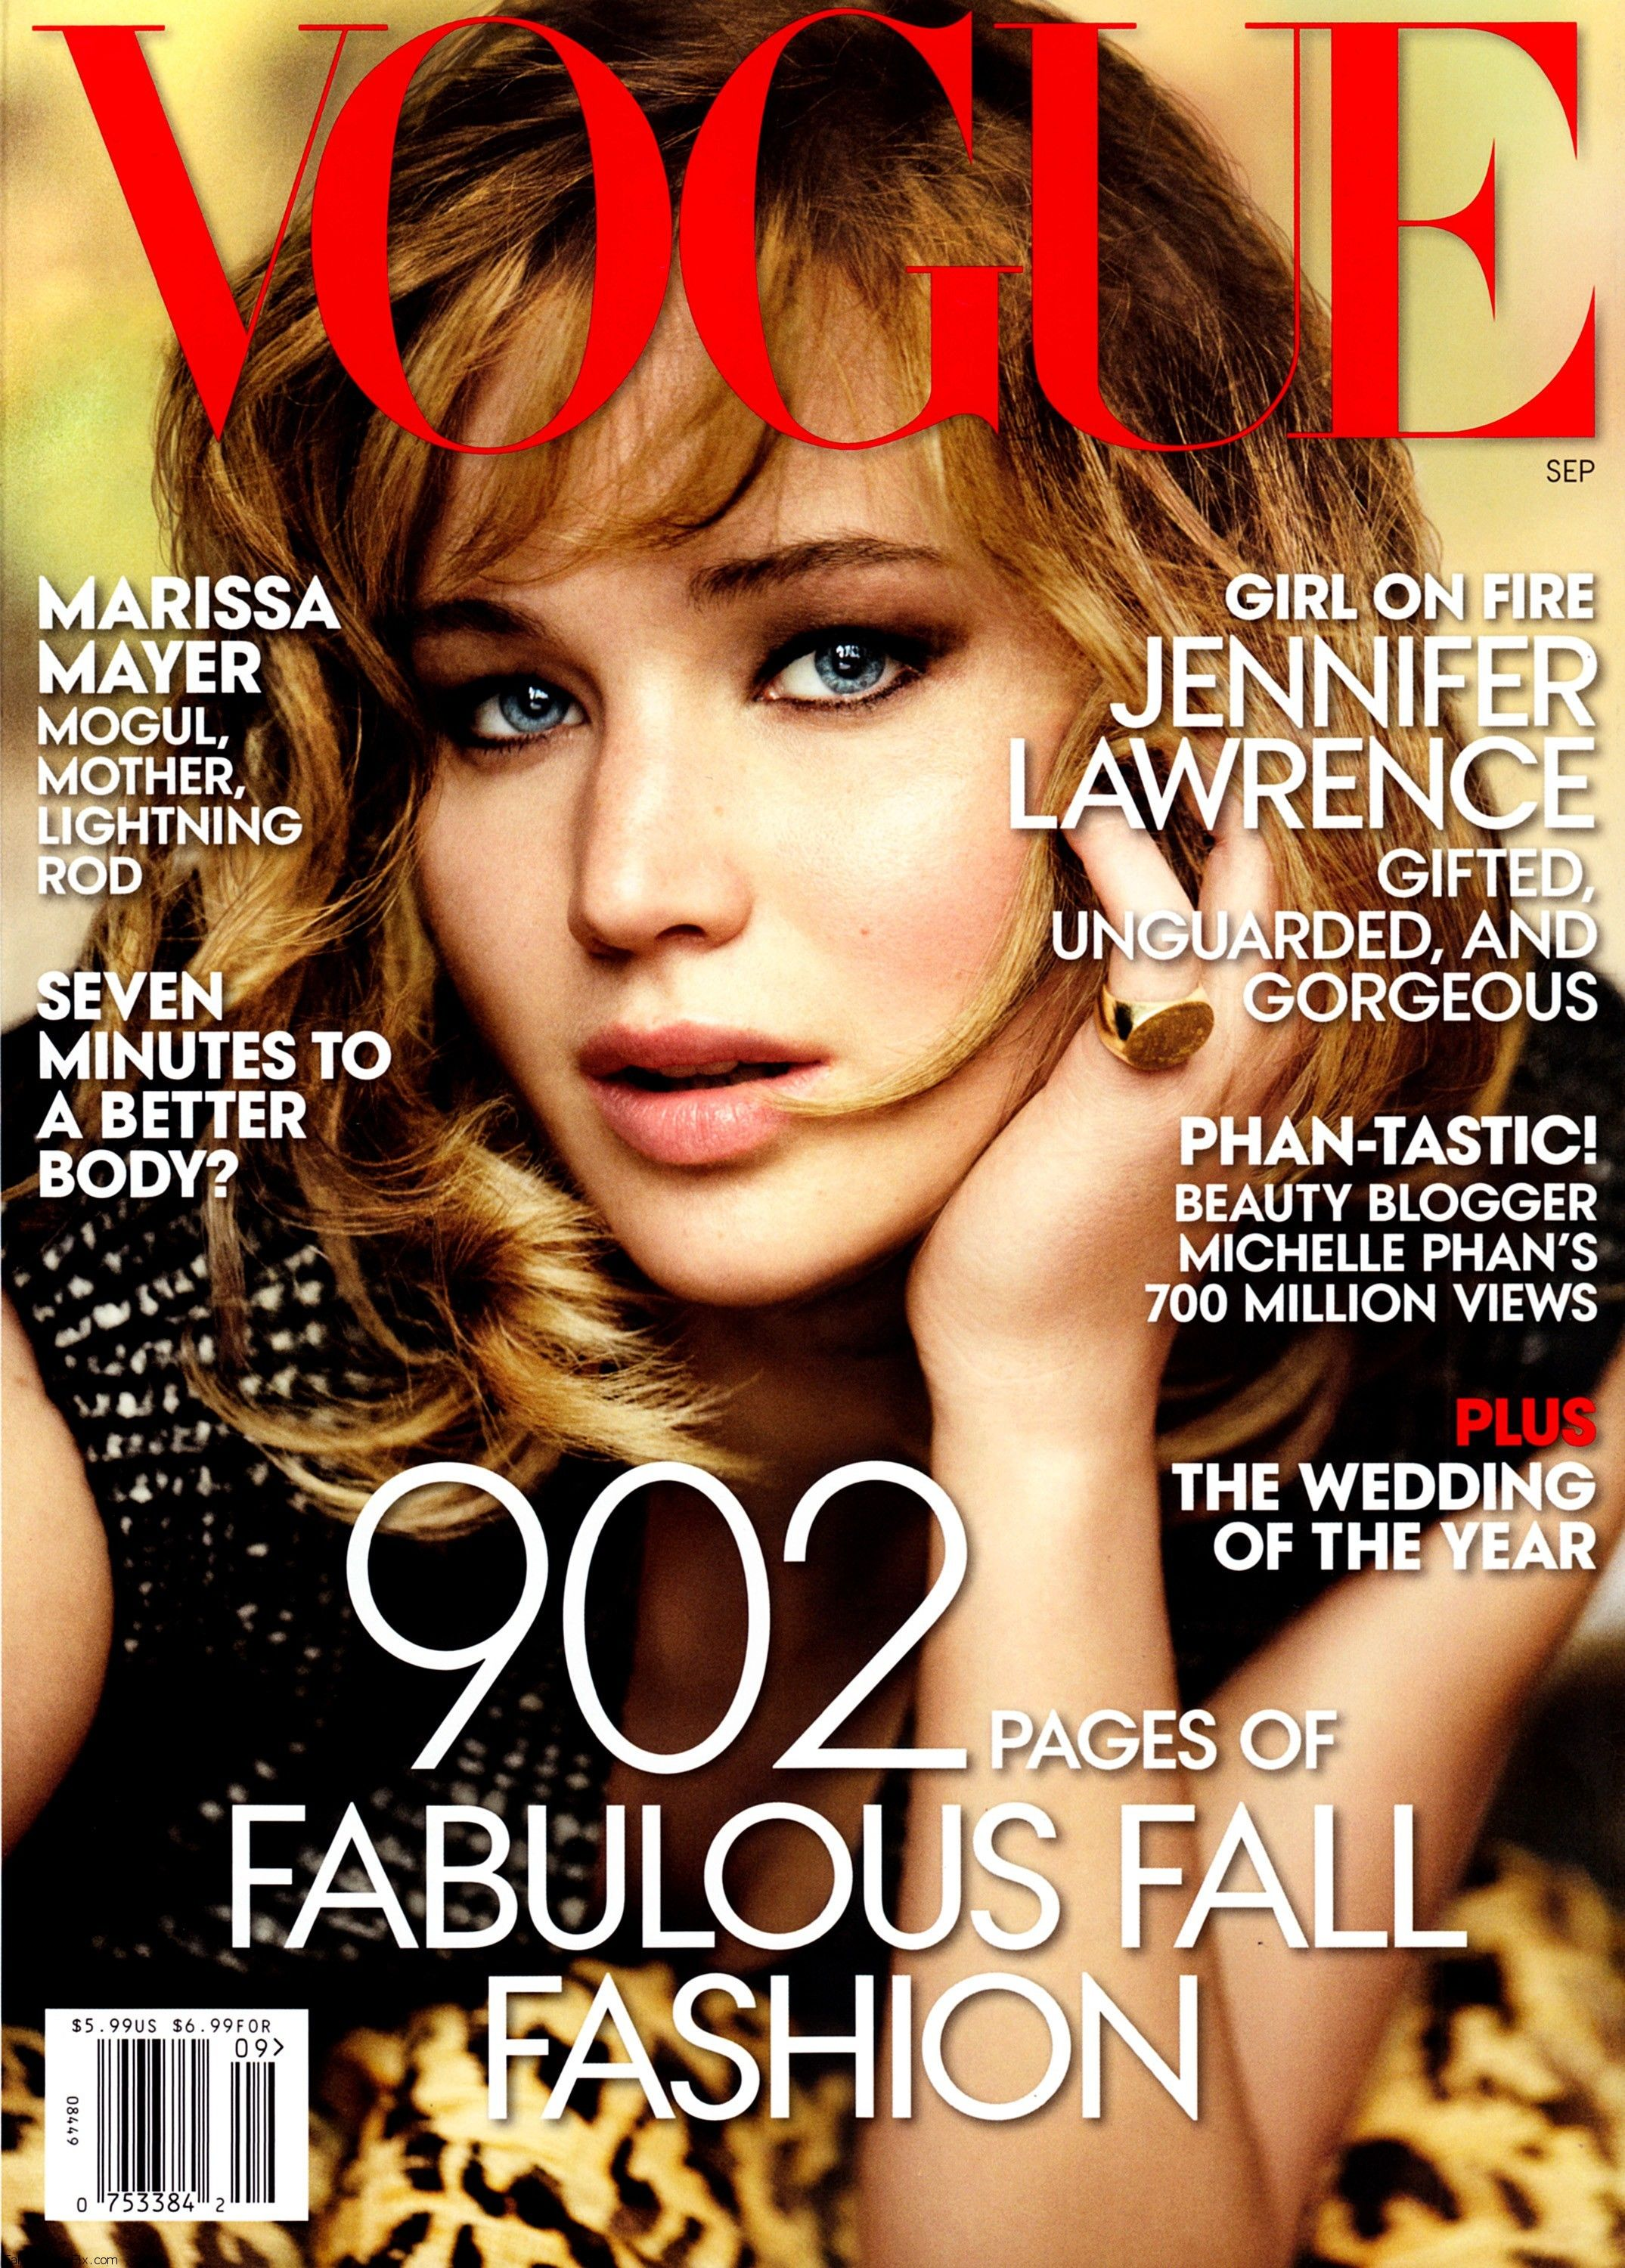 fashion_scans_remastered-jennifer_lawrence-vogue_usa-september_2013-scanned_by_vampirehorde-hq-1